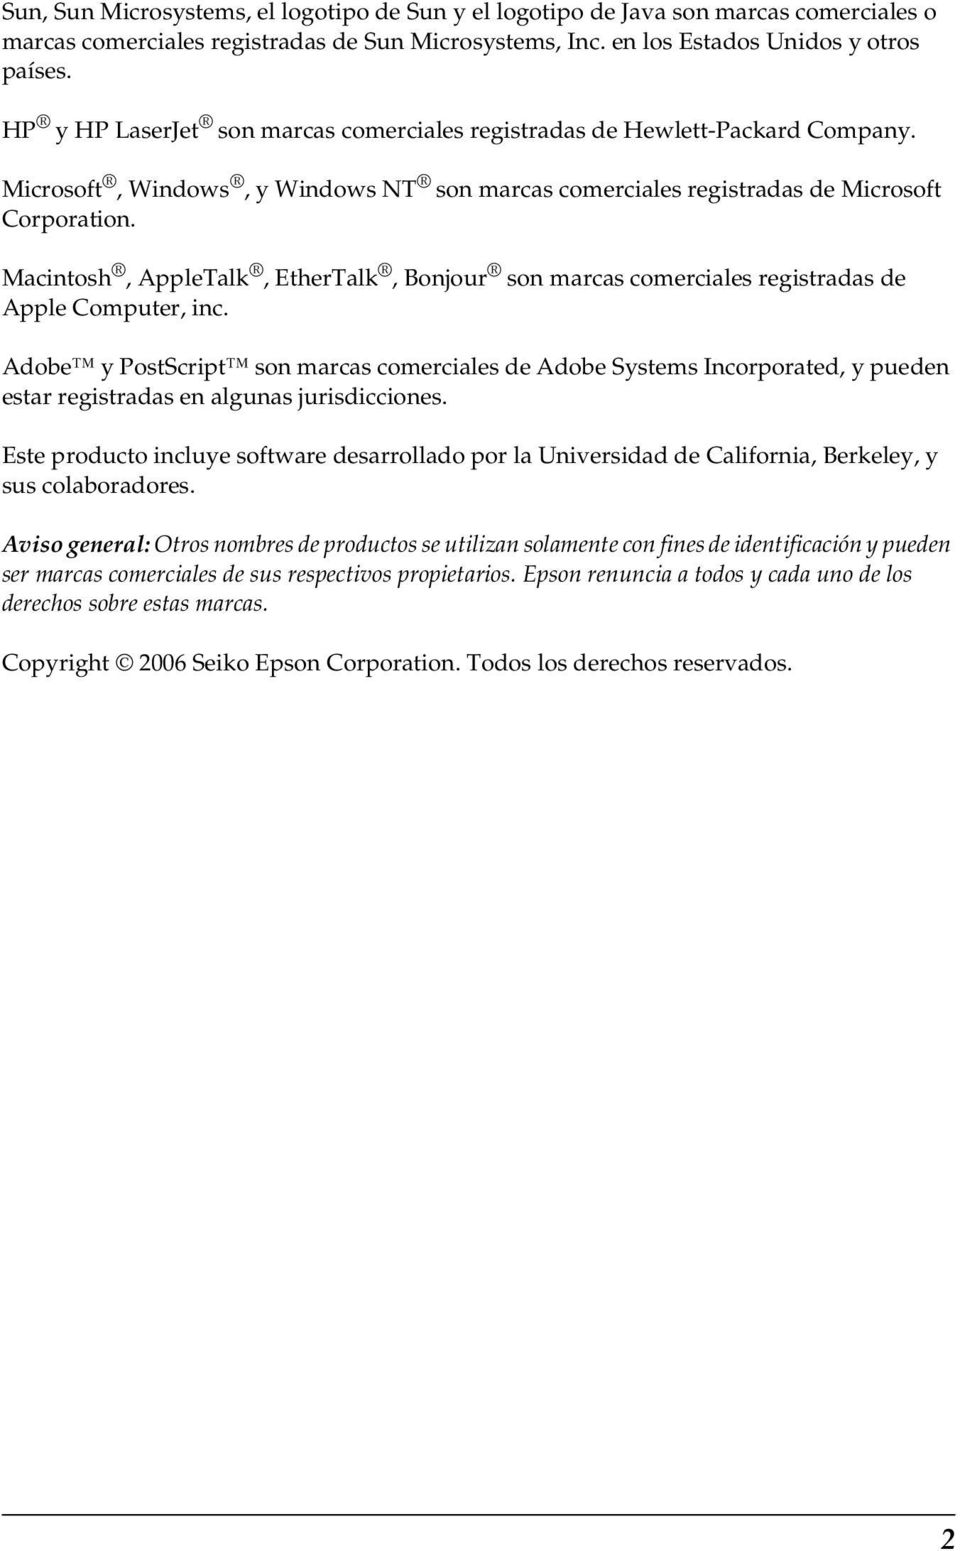 Macintosh, AppleTalk, EtherTalk, Bonjour son marcas comerciales registradas de Apple Computer, inc.